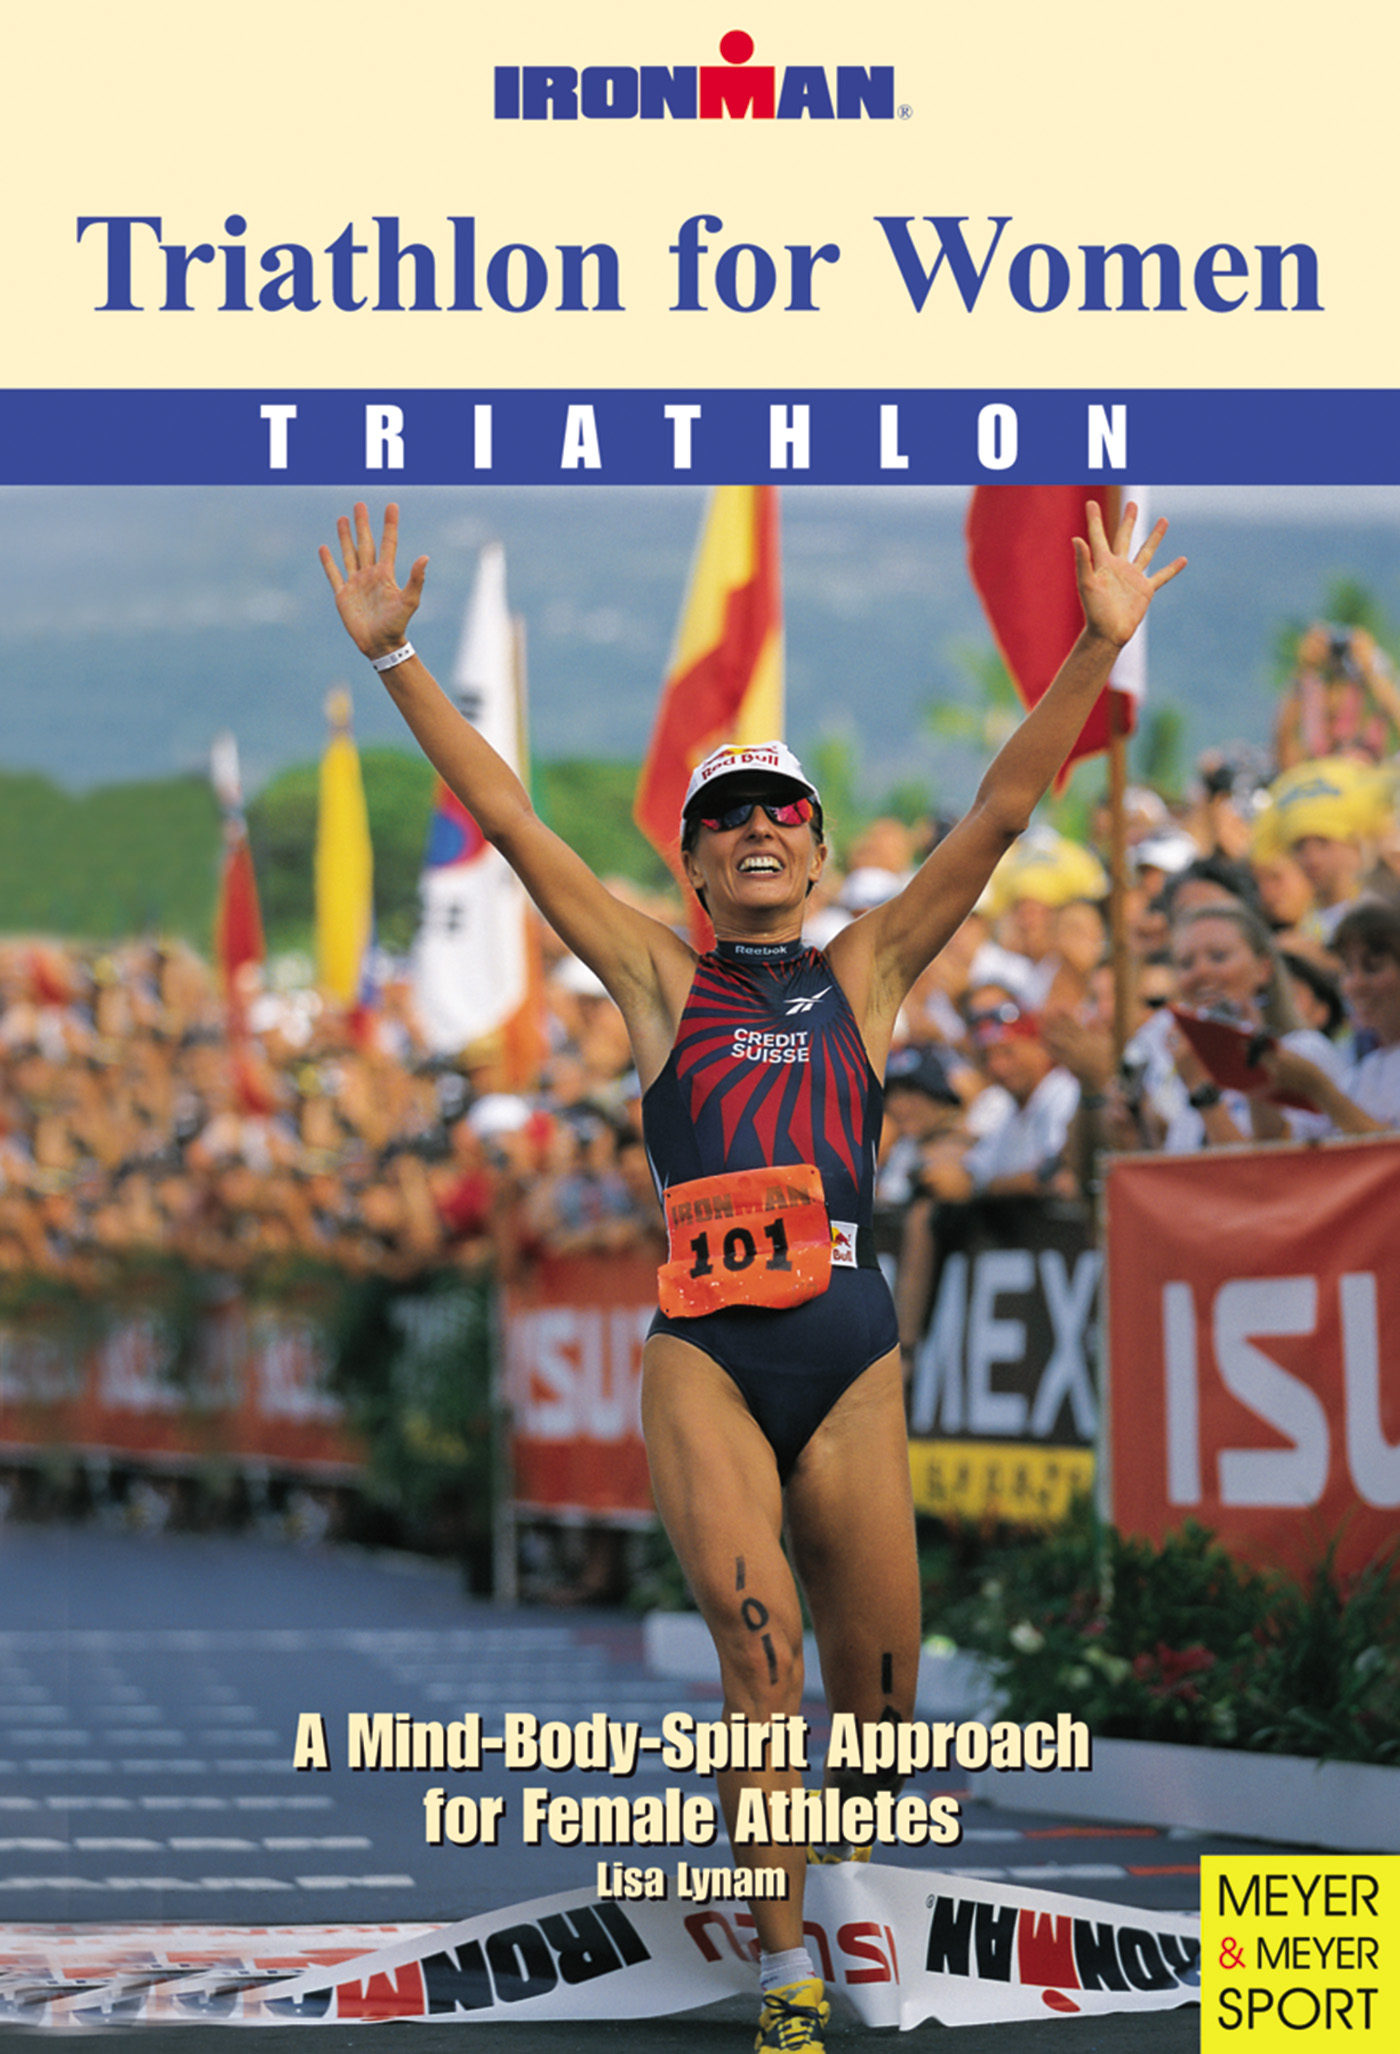 Triathlon for Women: A Mind-Body-Spirit Approach for Female Athletes (Ironman Book 5) (English Edition)